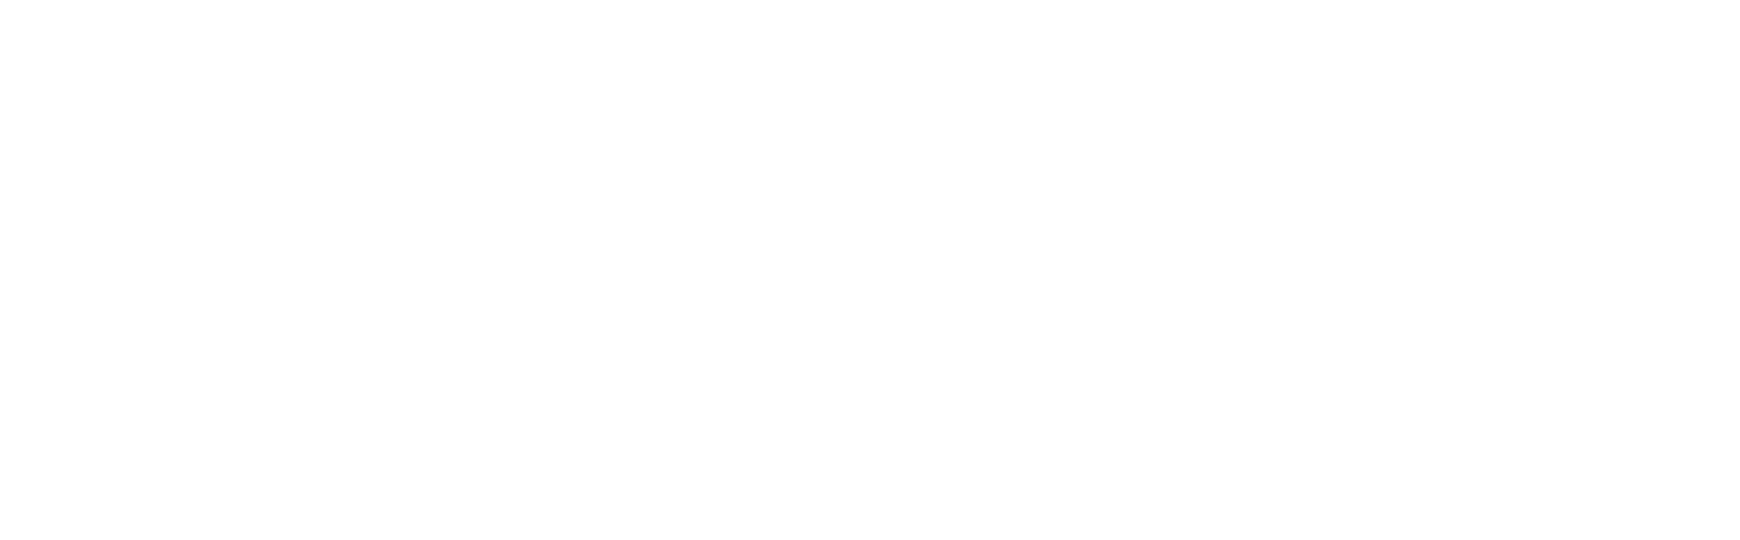 The Battle Between Artificial Intelligence and Natural Intelligence